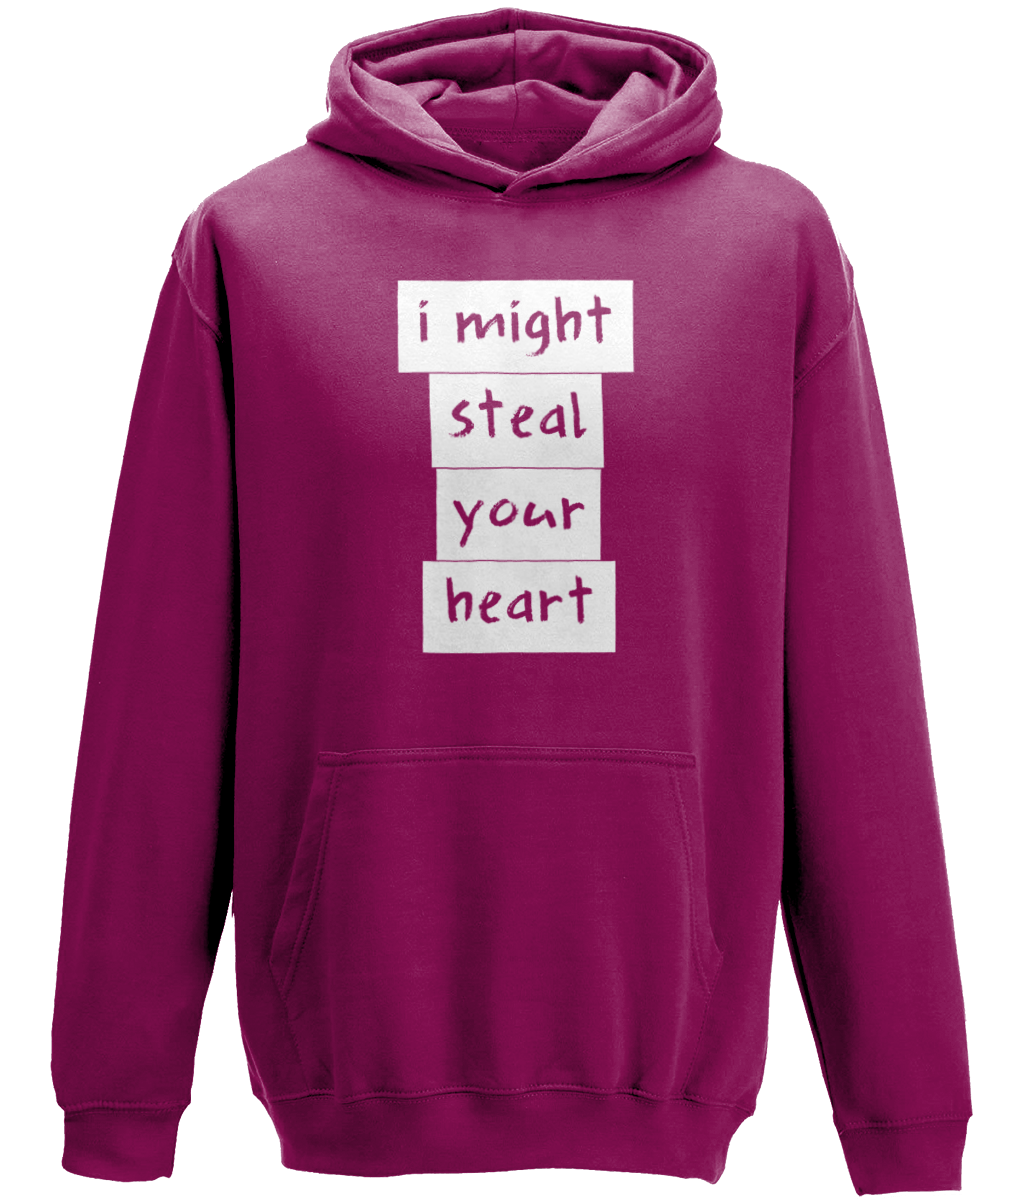 I might steal your heart Kids Hoodie